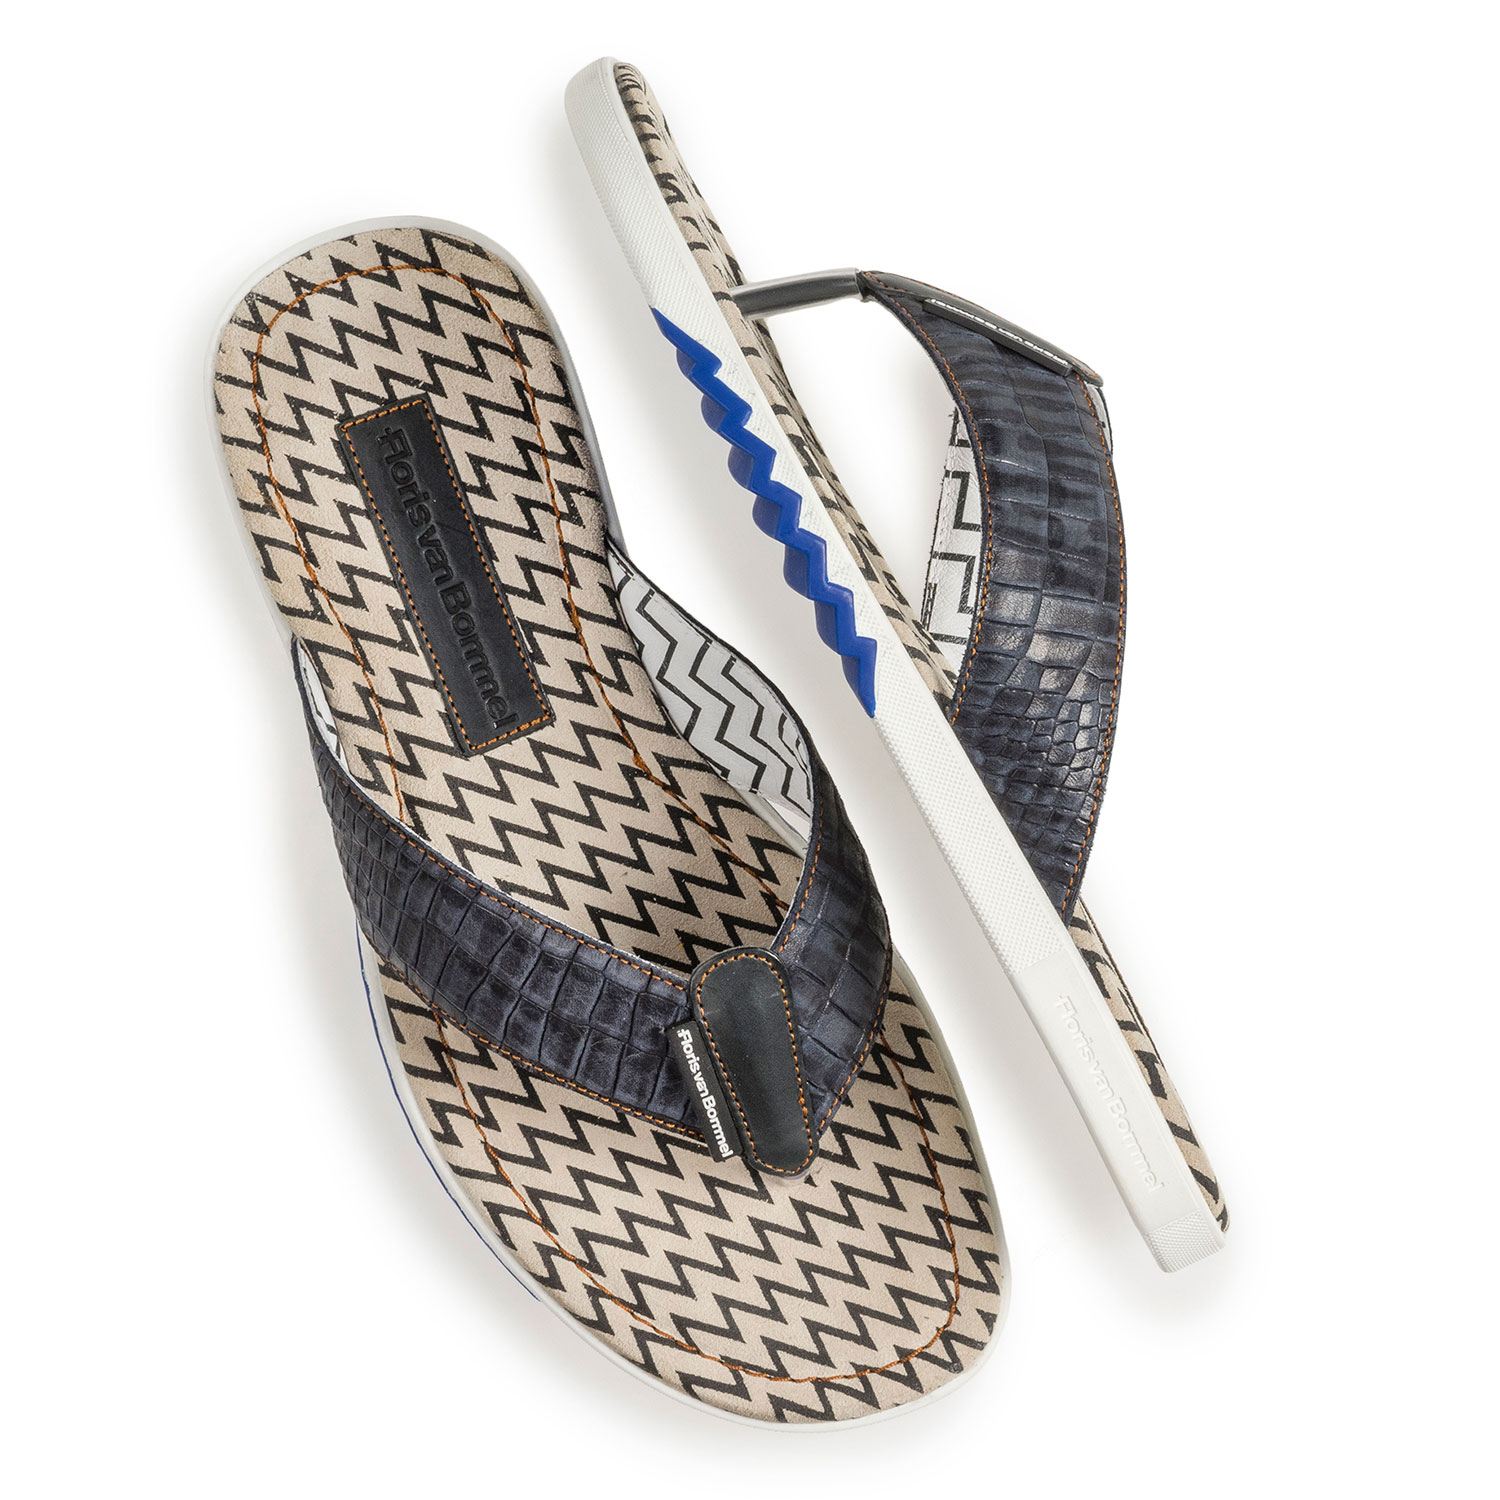 20201/16 - Dark blue thong slipper with croco print